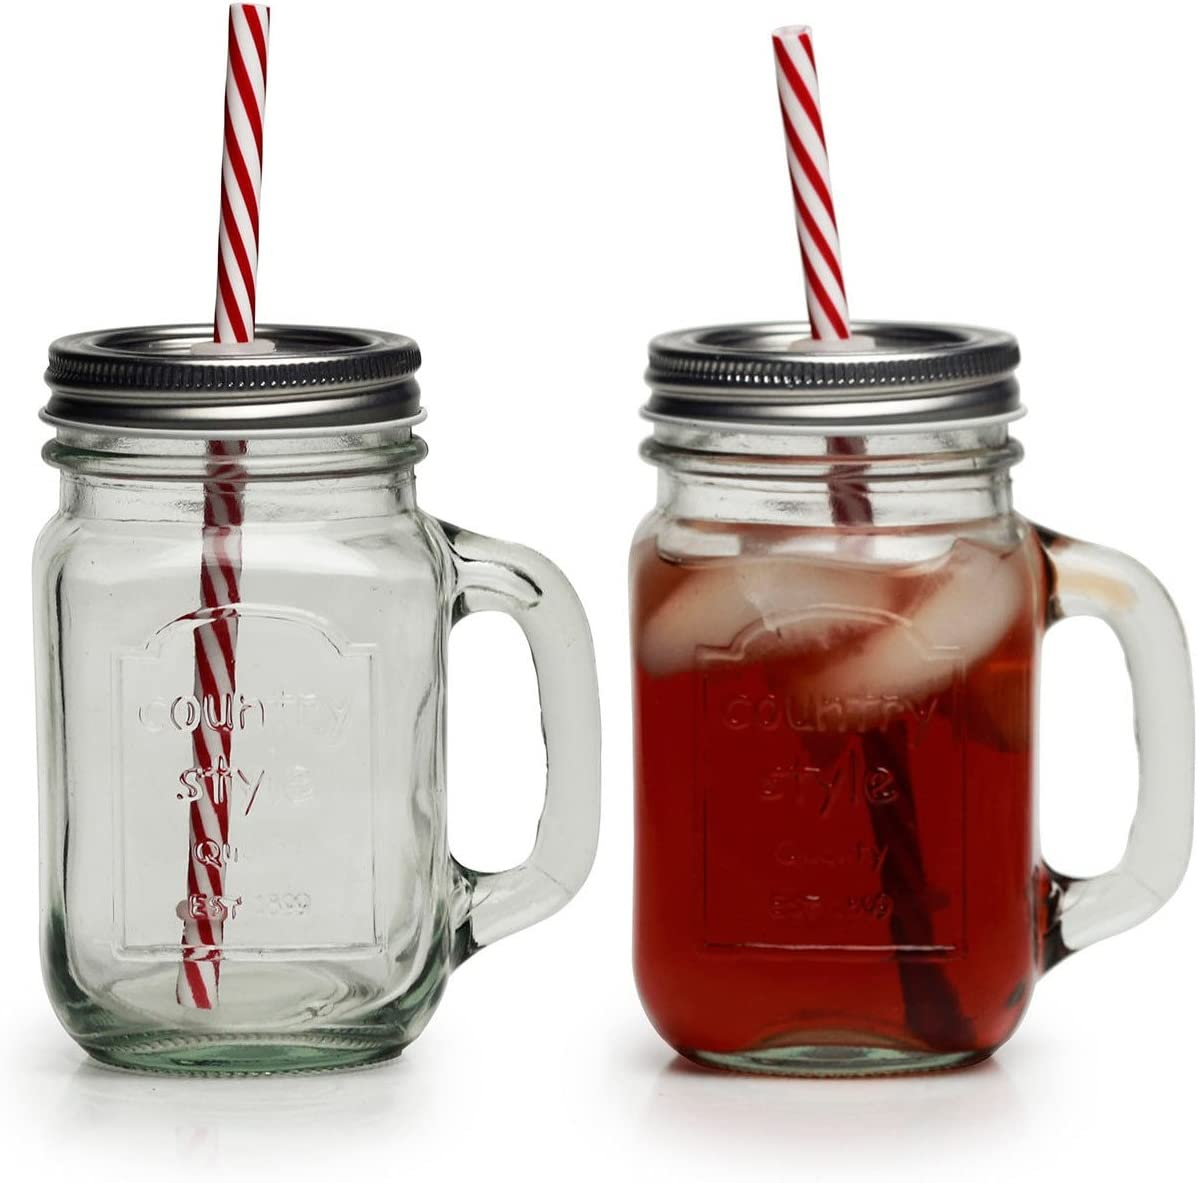 Amazon Com Circleware Country Glass Yorkshire Jar Drinking Handles Metal Lids And Mason Mugs 15 Ounce Clear Limited Edition Glassware Hard Plastic Reusable Straws Set Of 4 Kitchen Dining